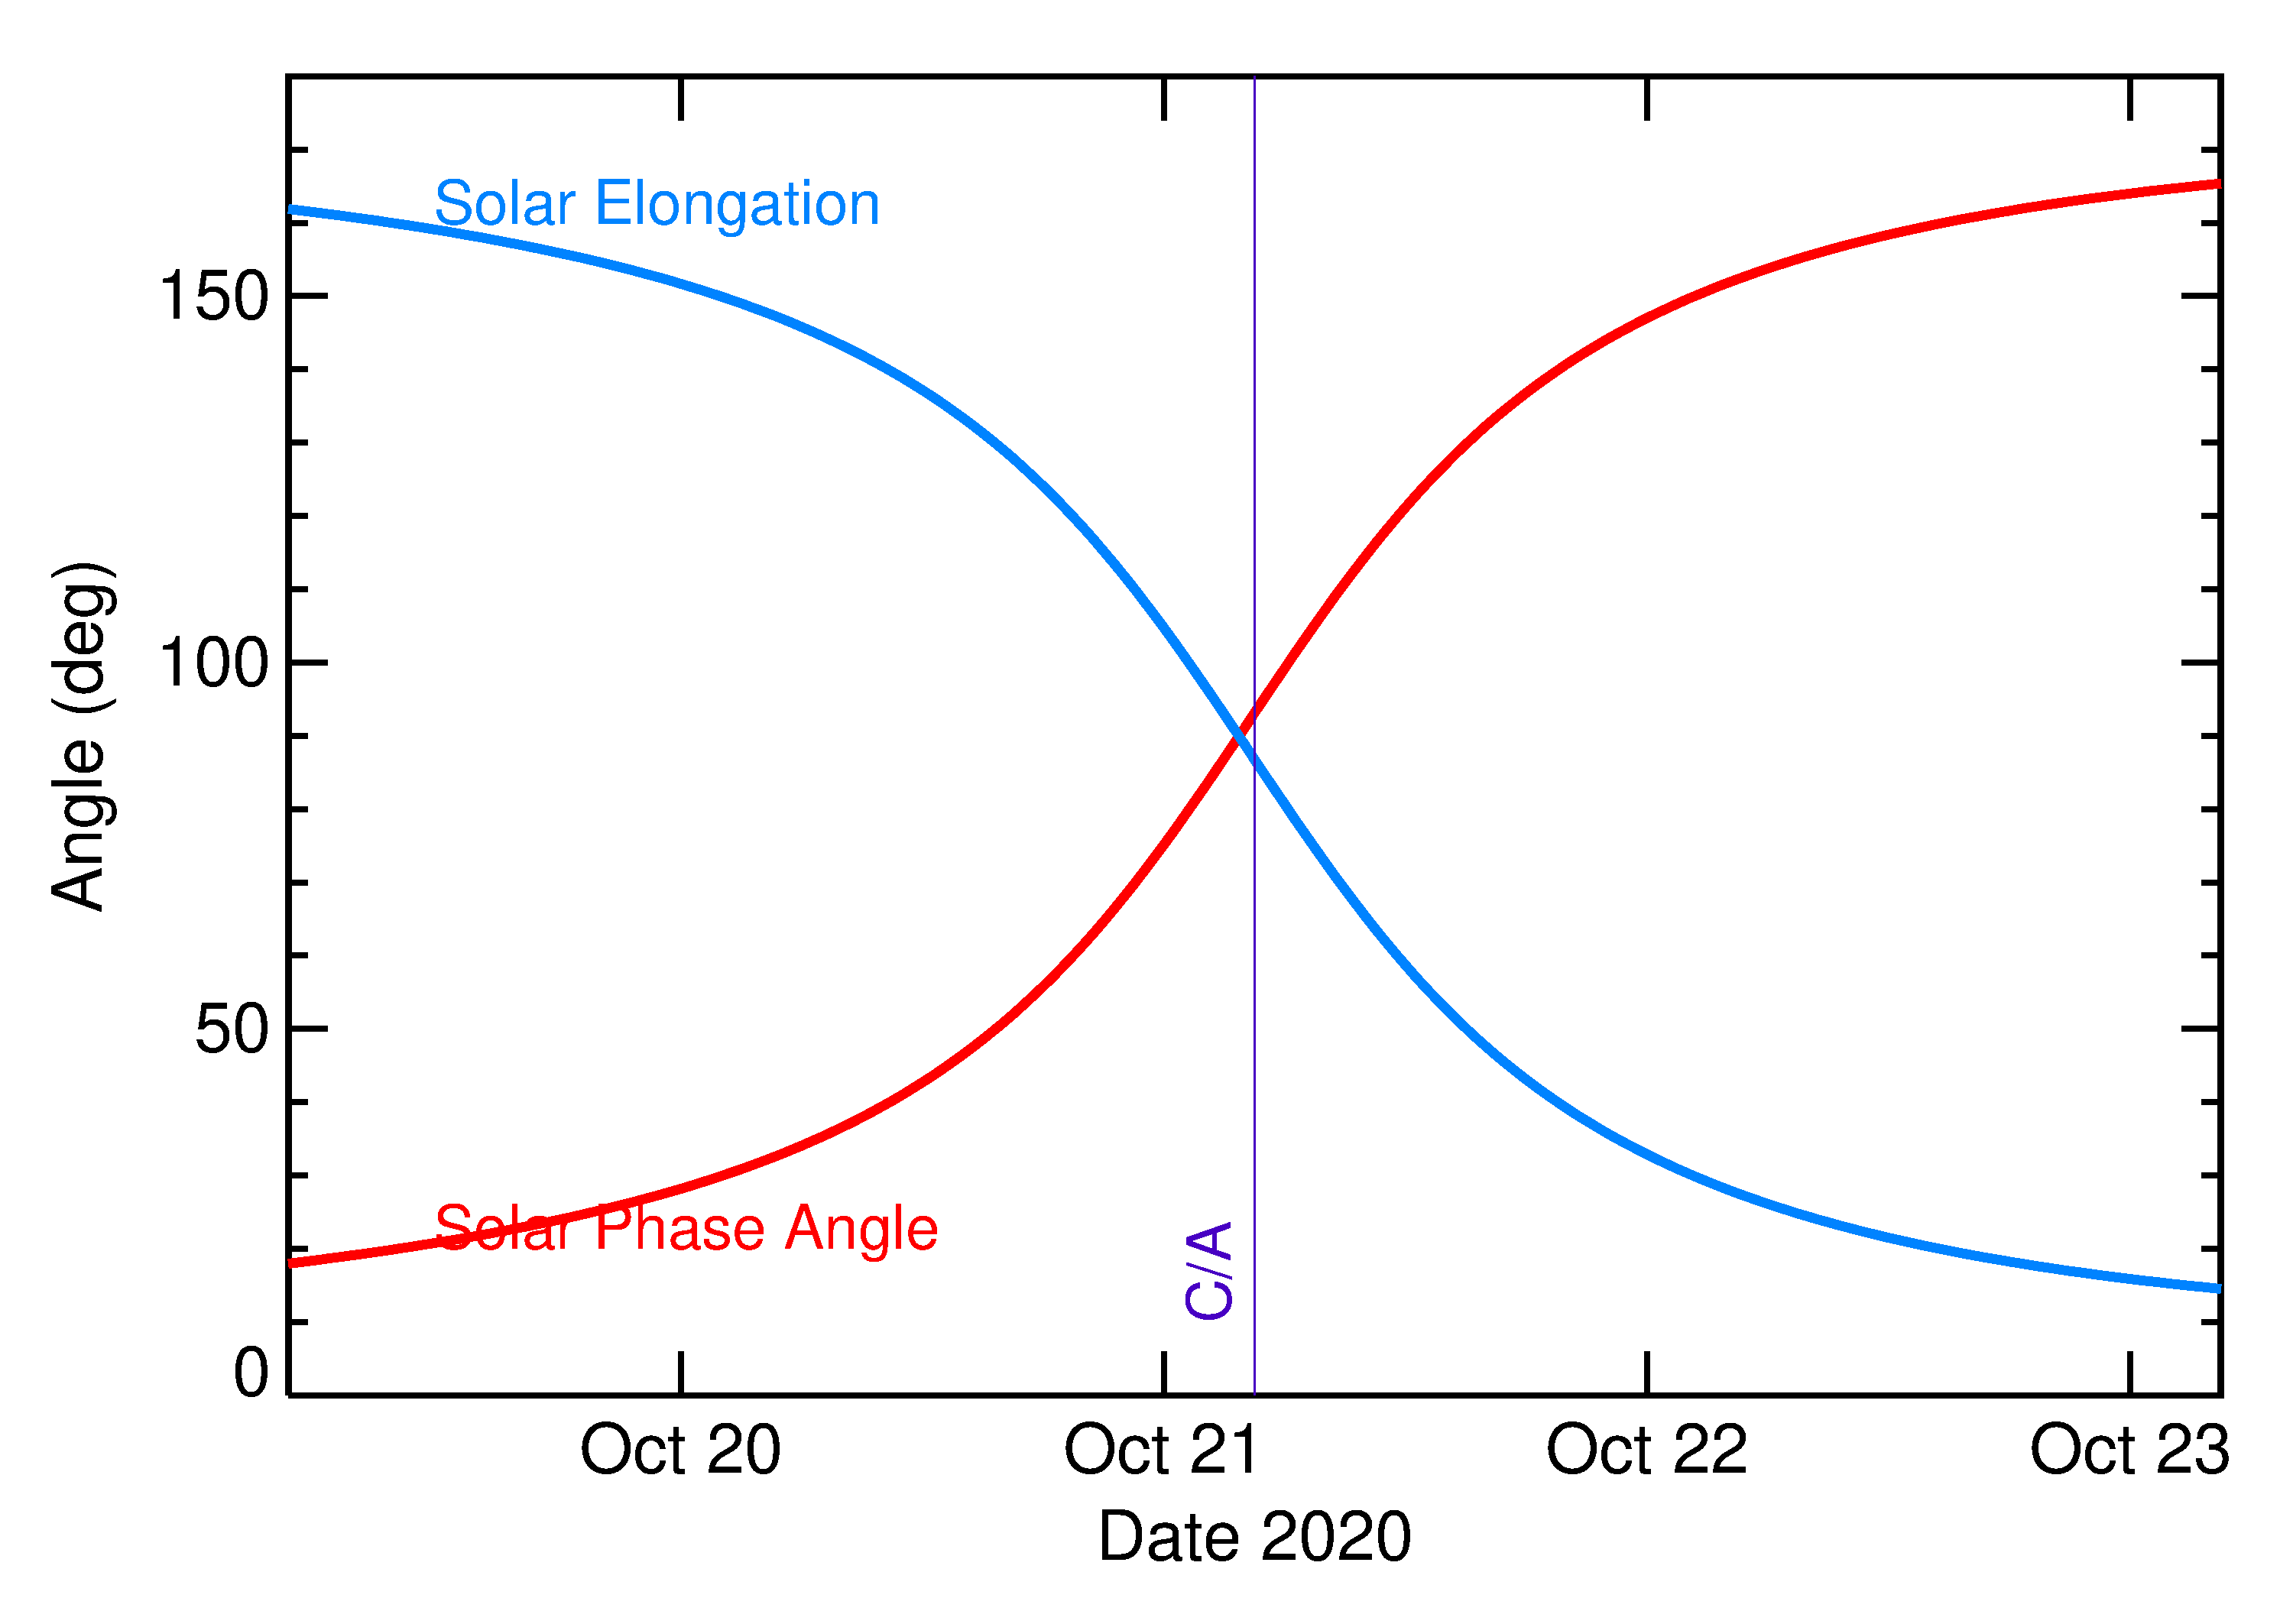 Solar Elongation and Solar Phase Angle of 2020 UY in the days around closest approach